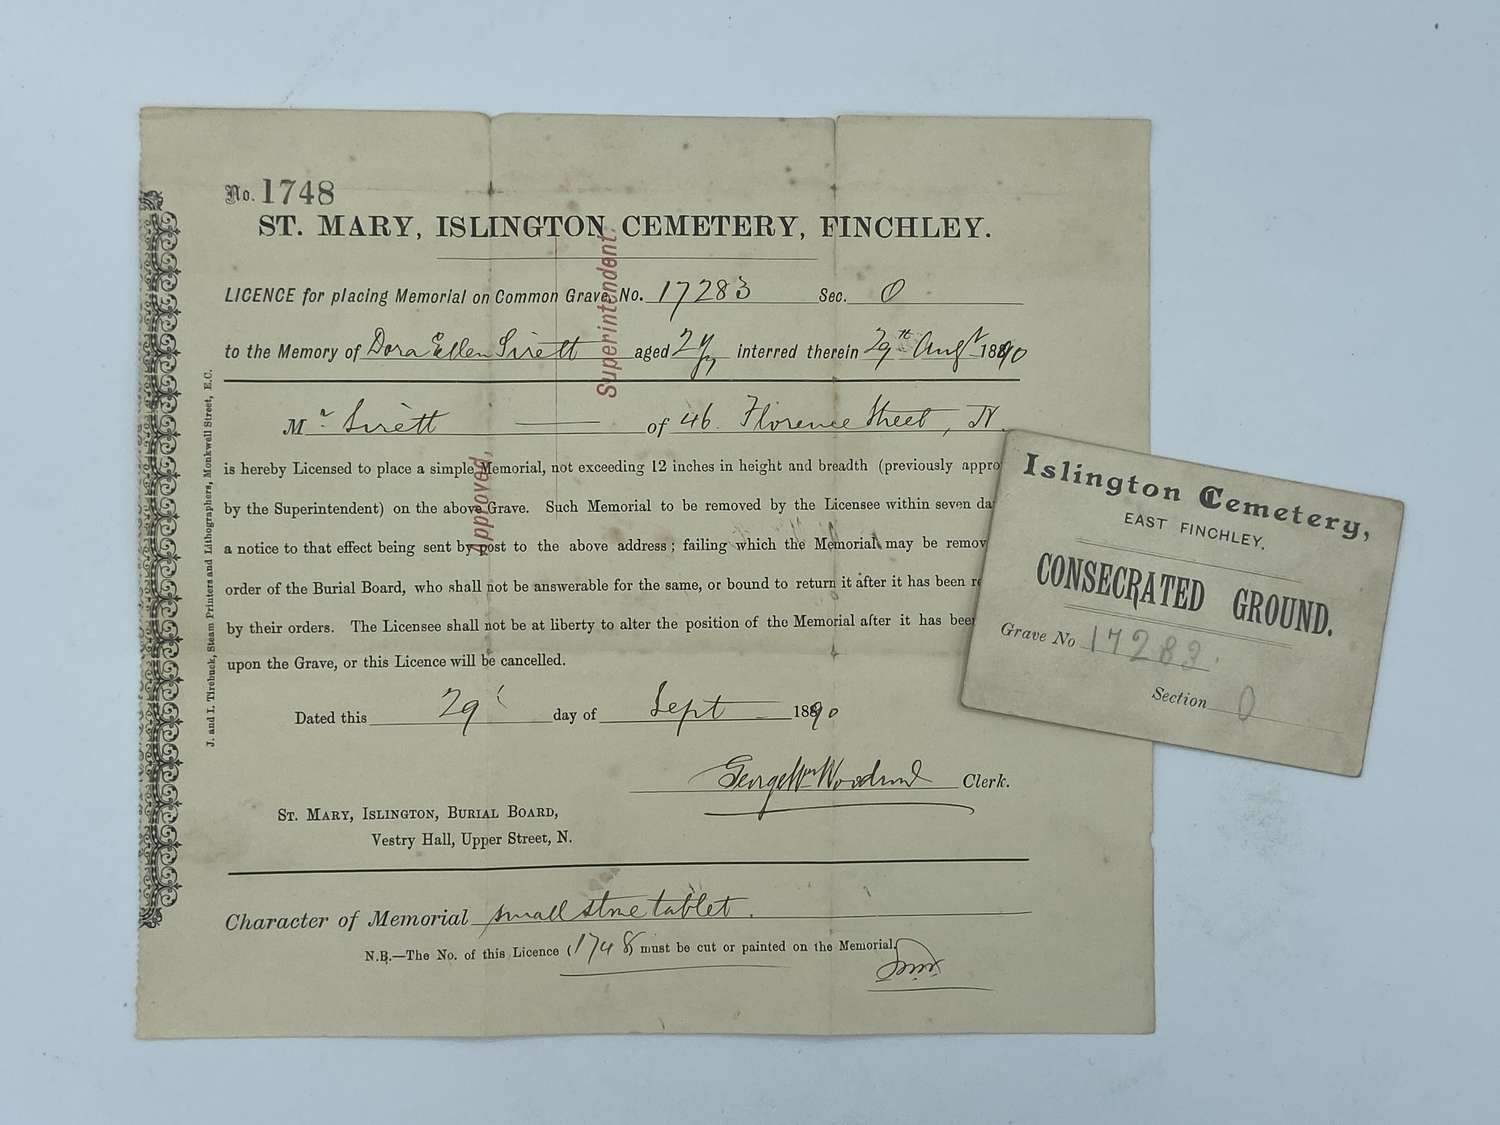 Victorian 1890 Dated St Mary Cemetery Consecrate Ground Card